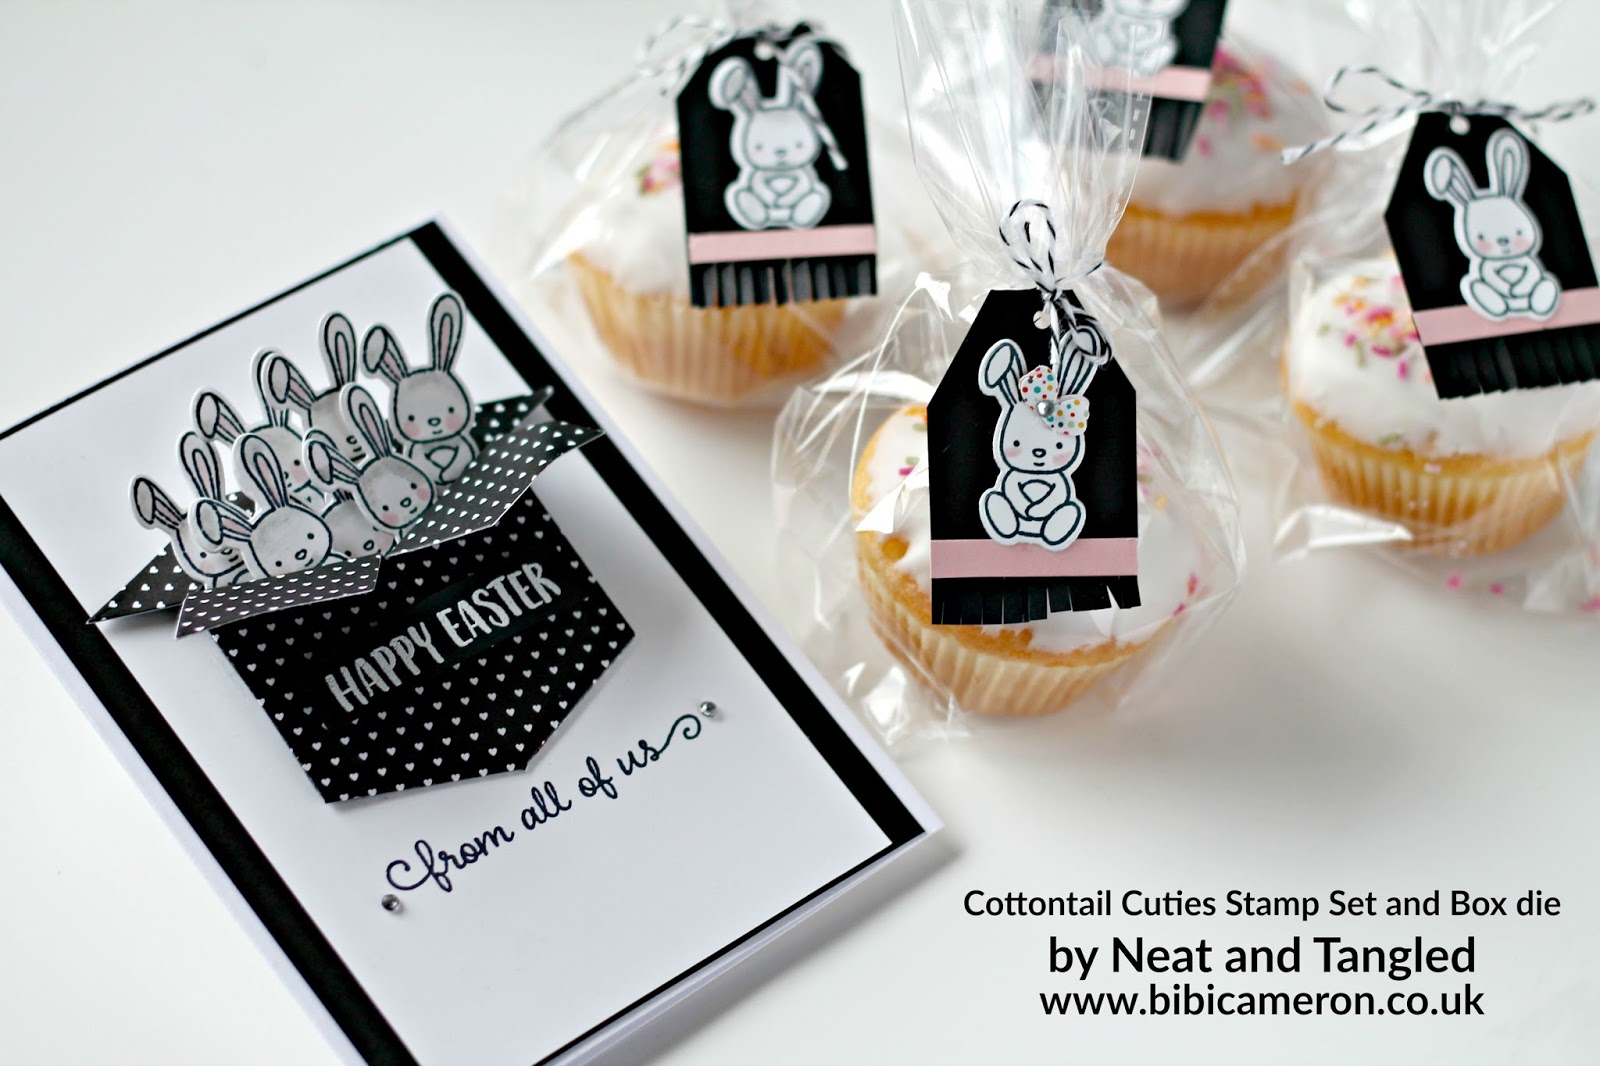 Stamping Friends Guest Designer with Cottontail Cuties